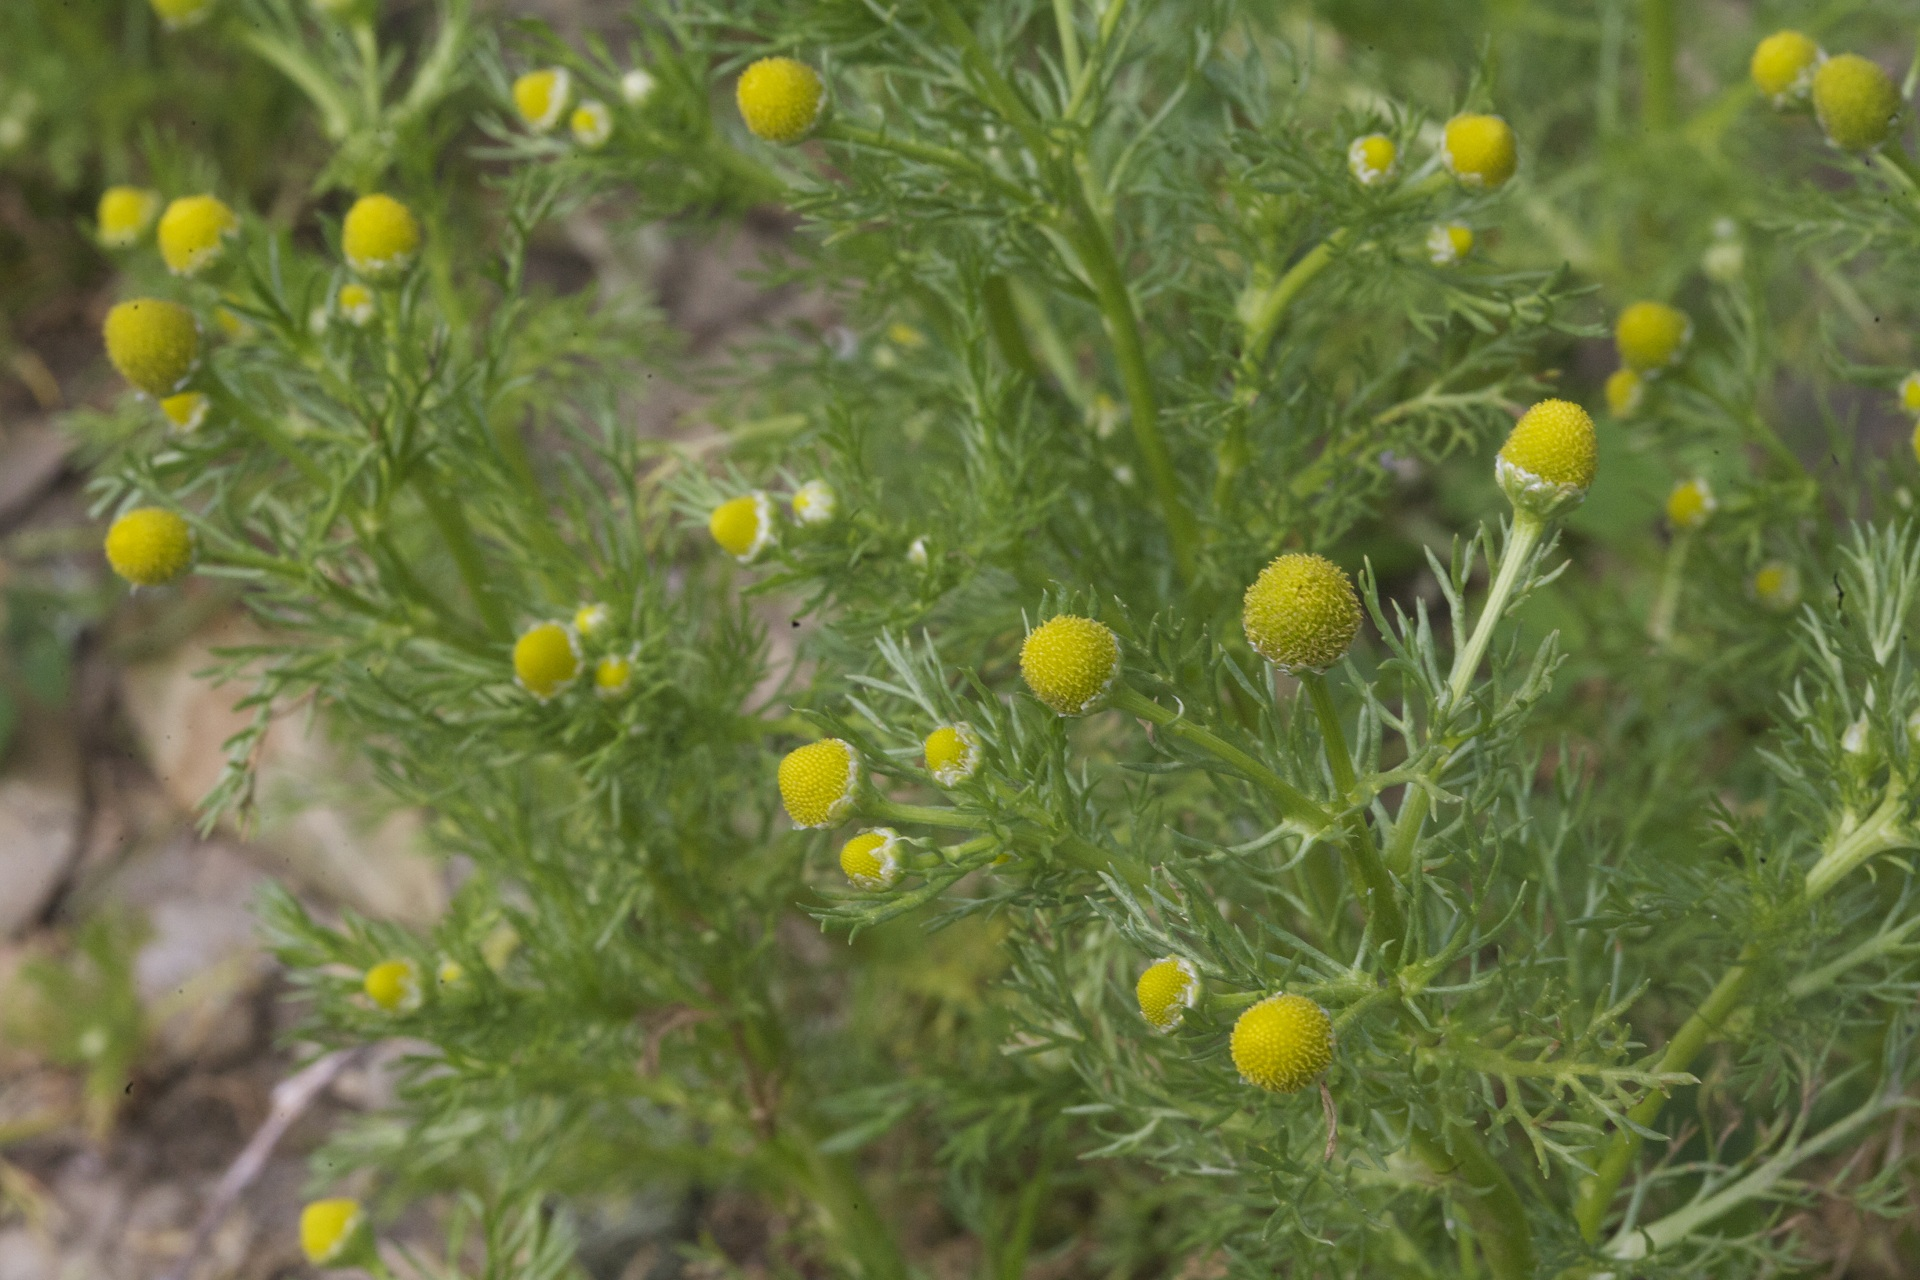 Plant Pineapple weed to keep mosquitoes away